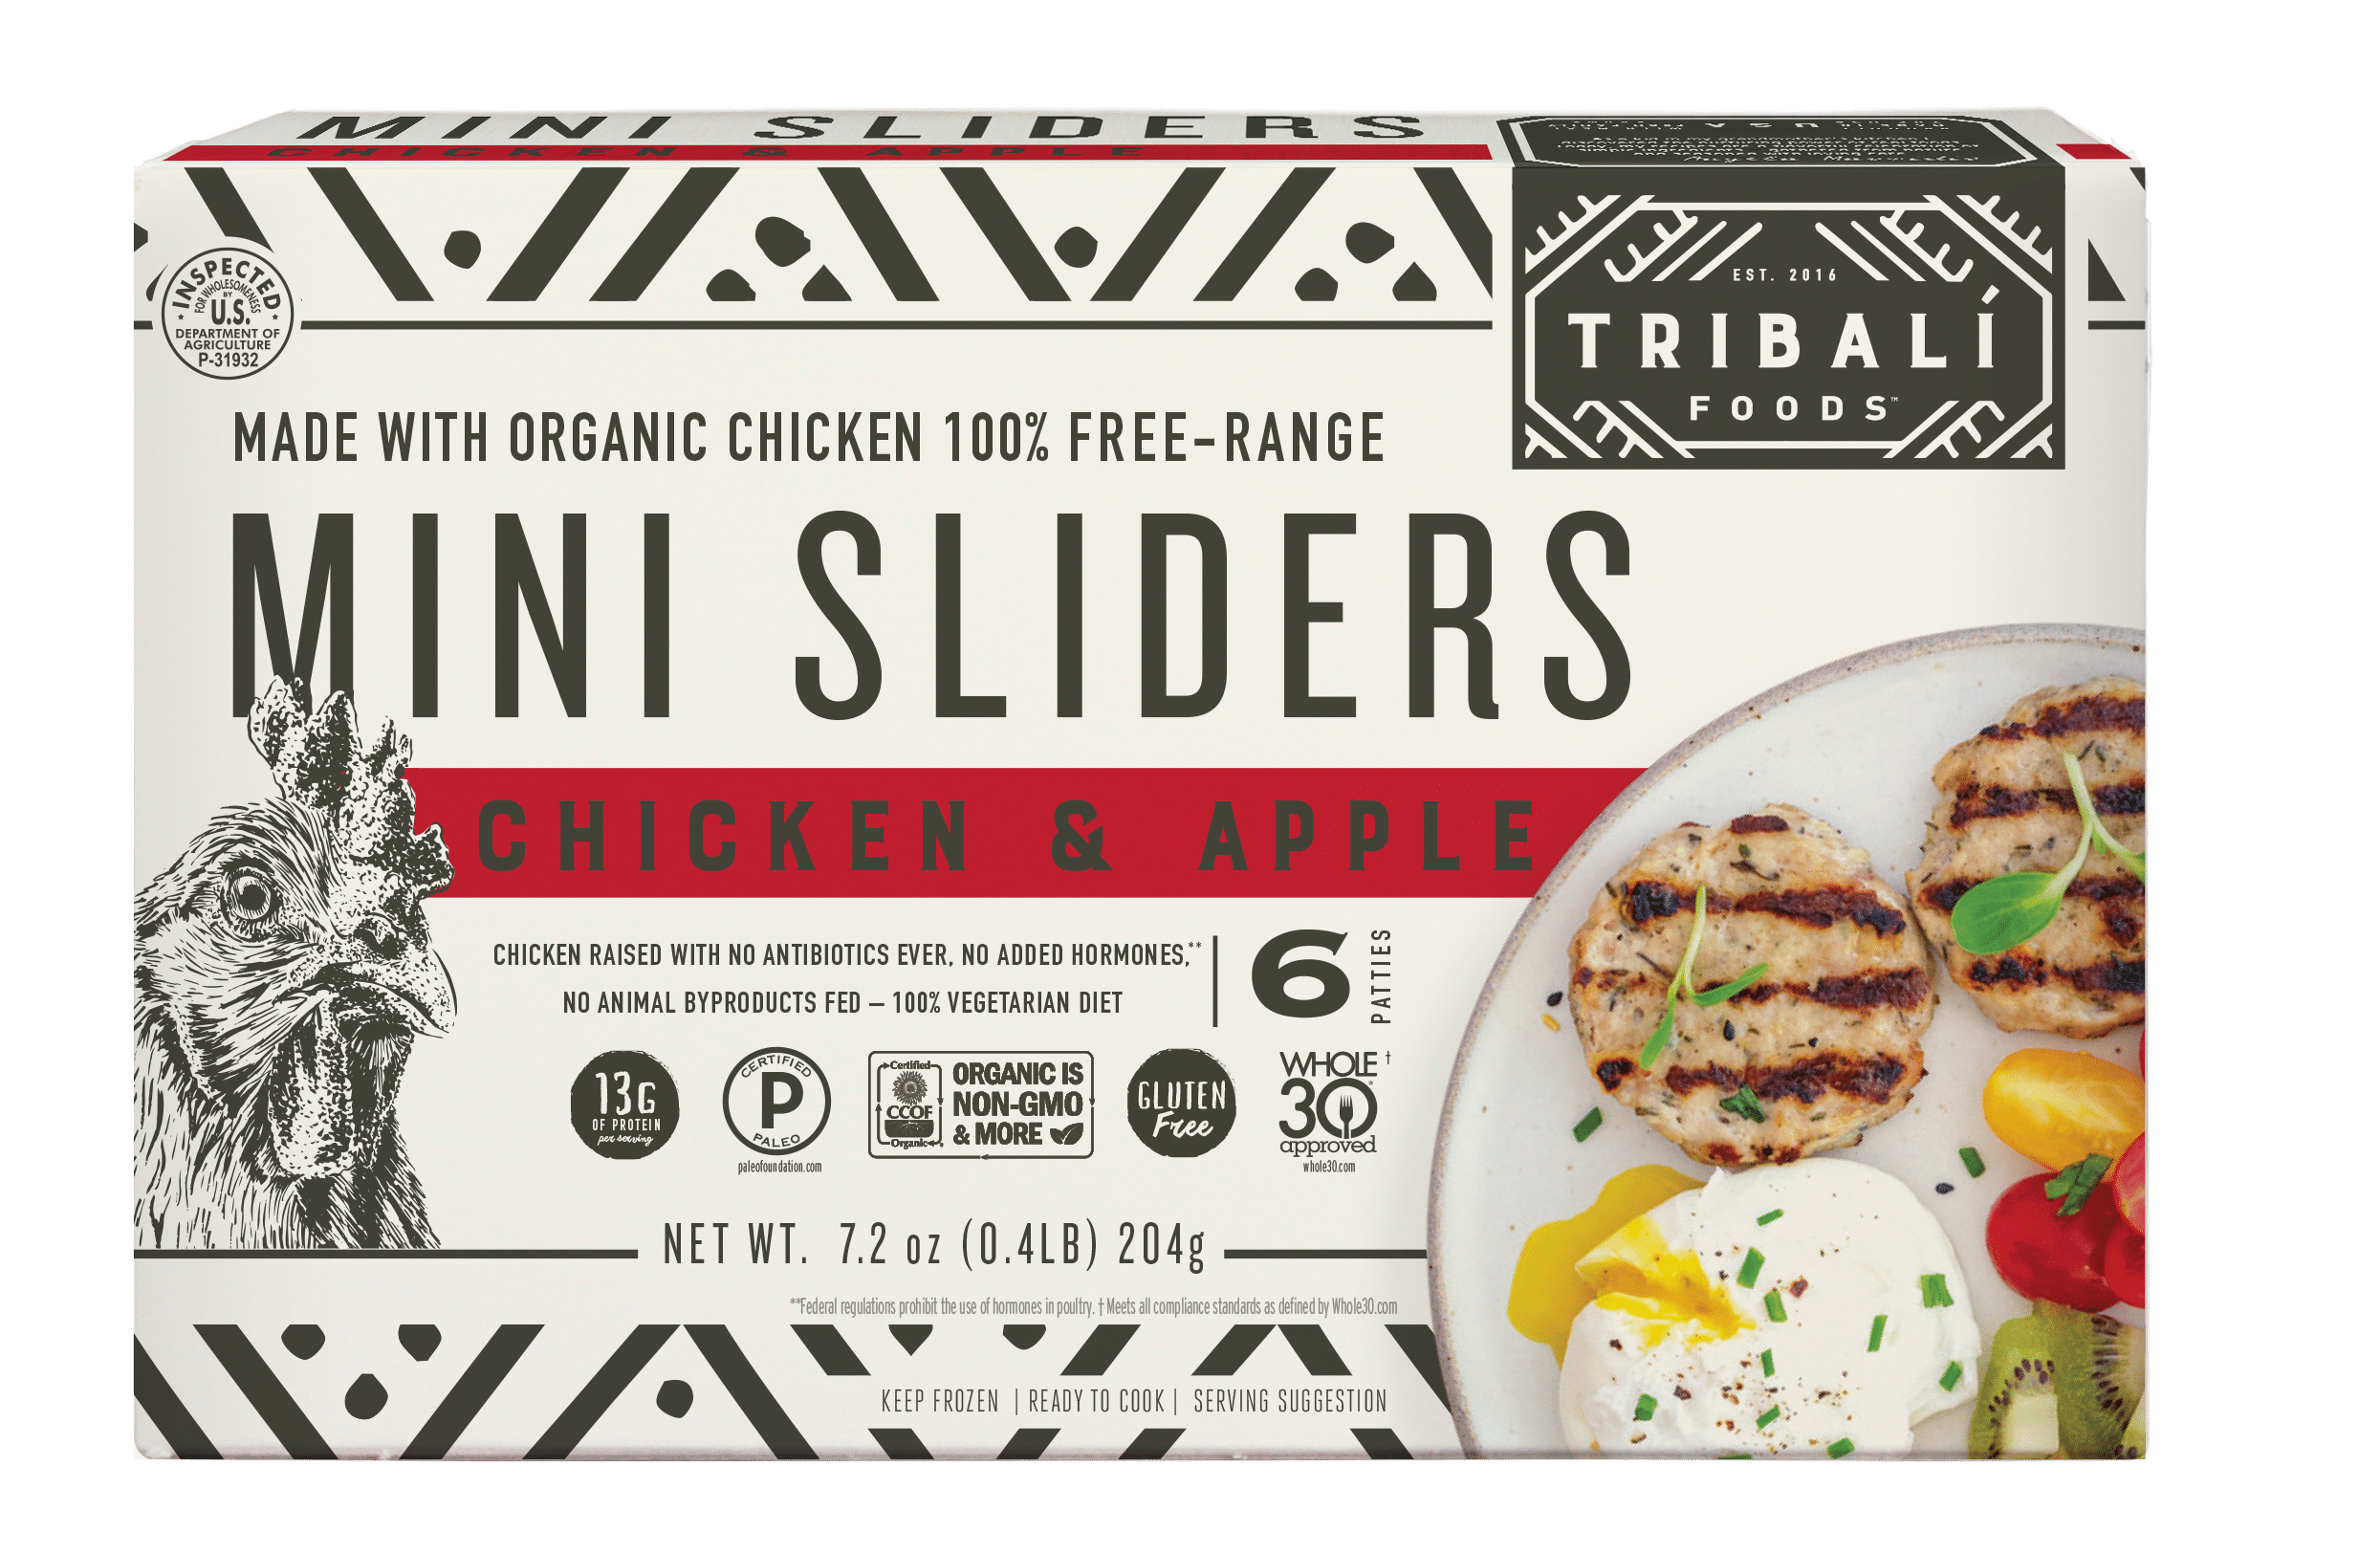 TRIBALÍ Foods Releases Chicken & Apple and Pork & Sausage Mini Sliders